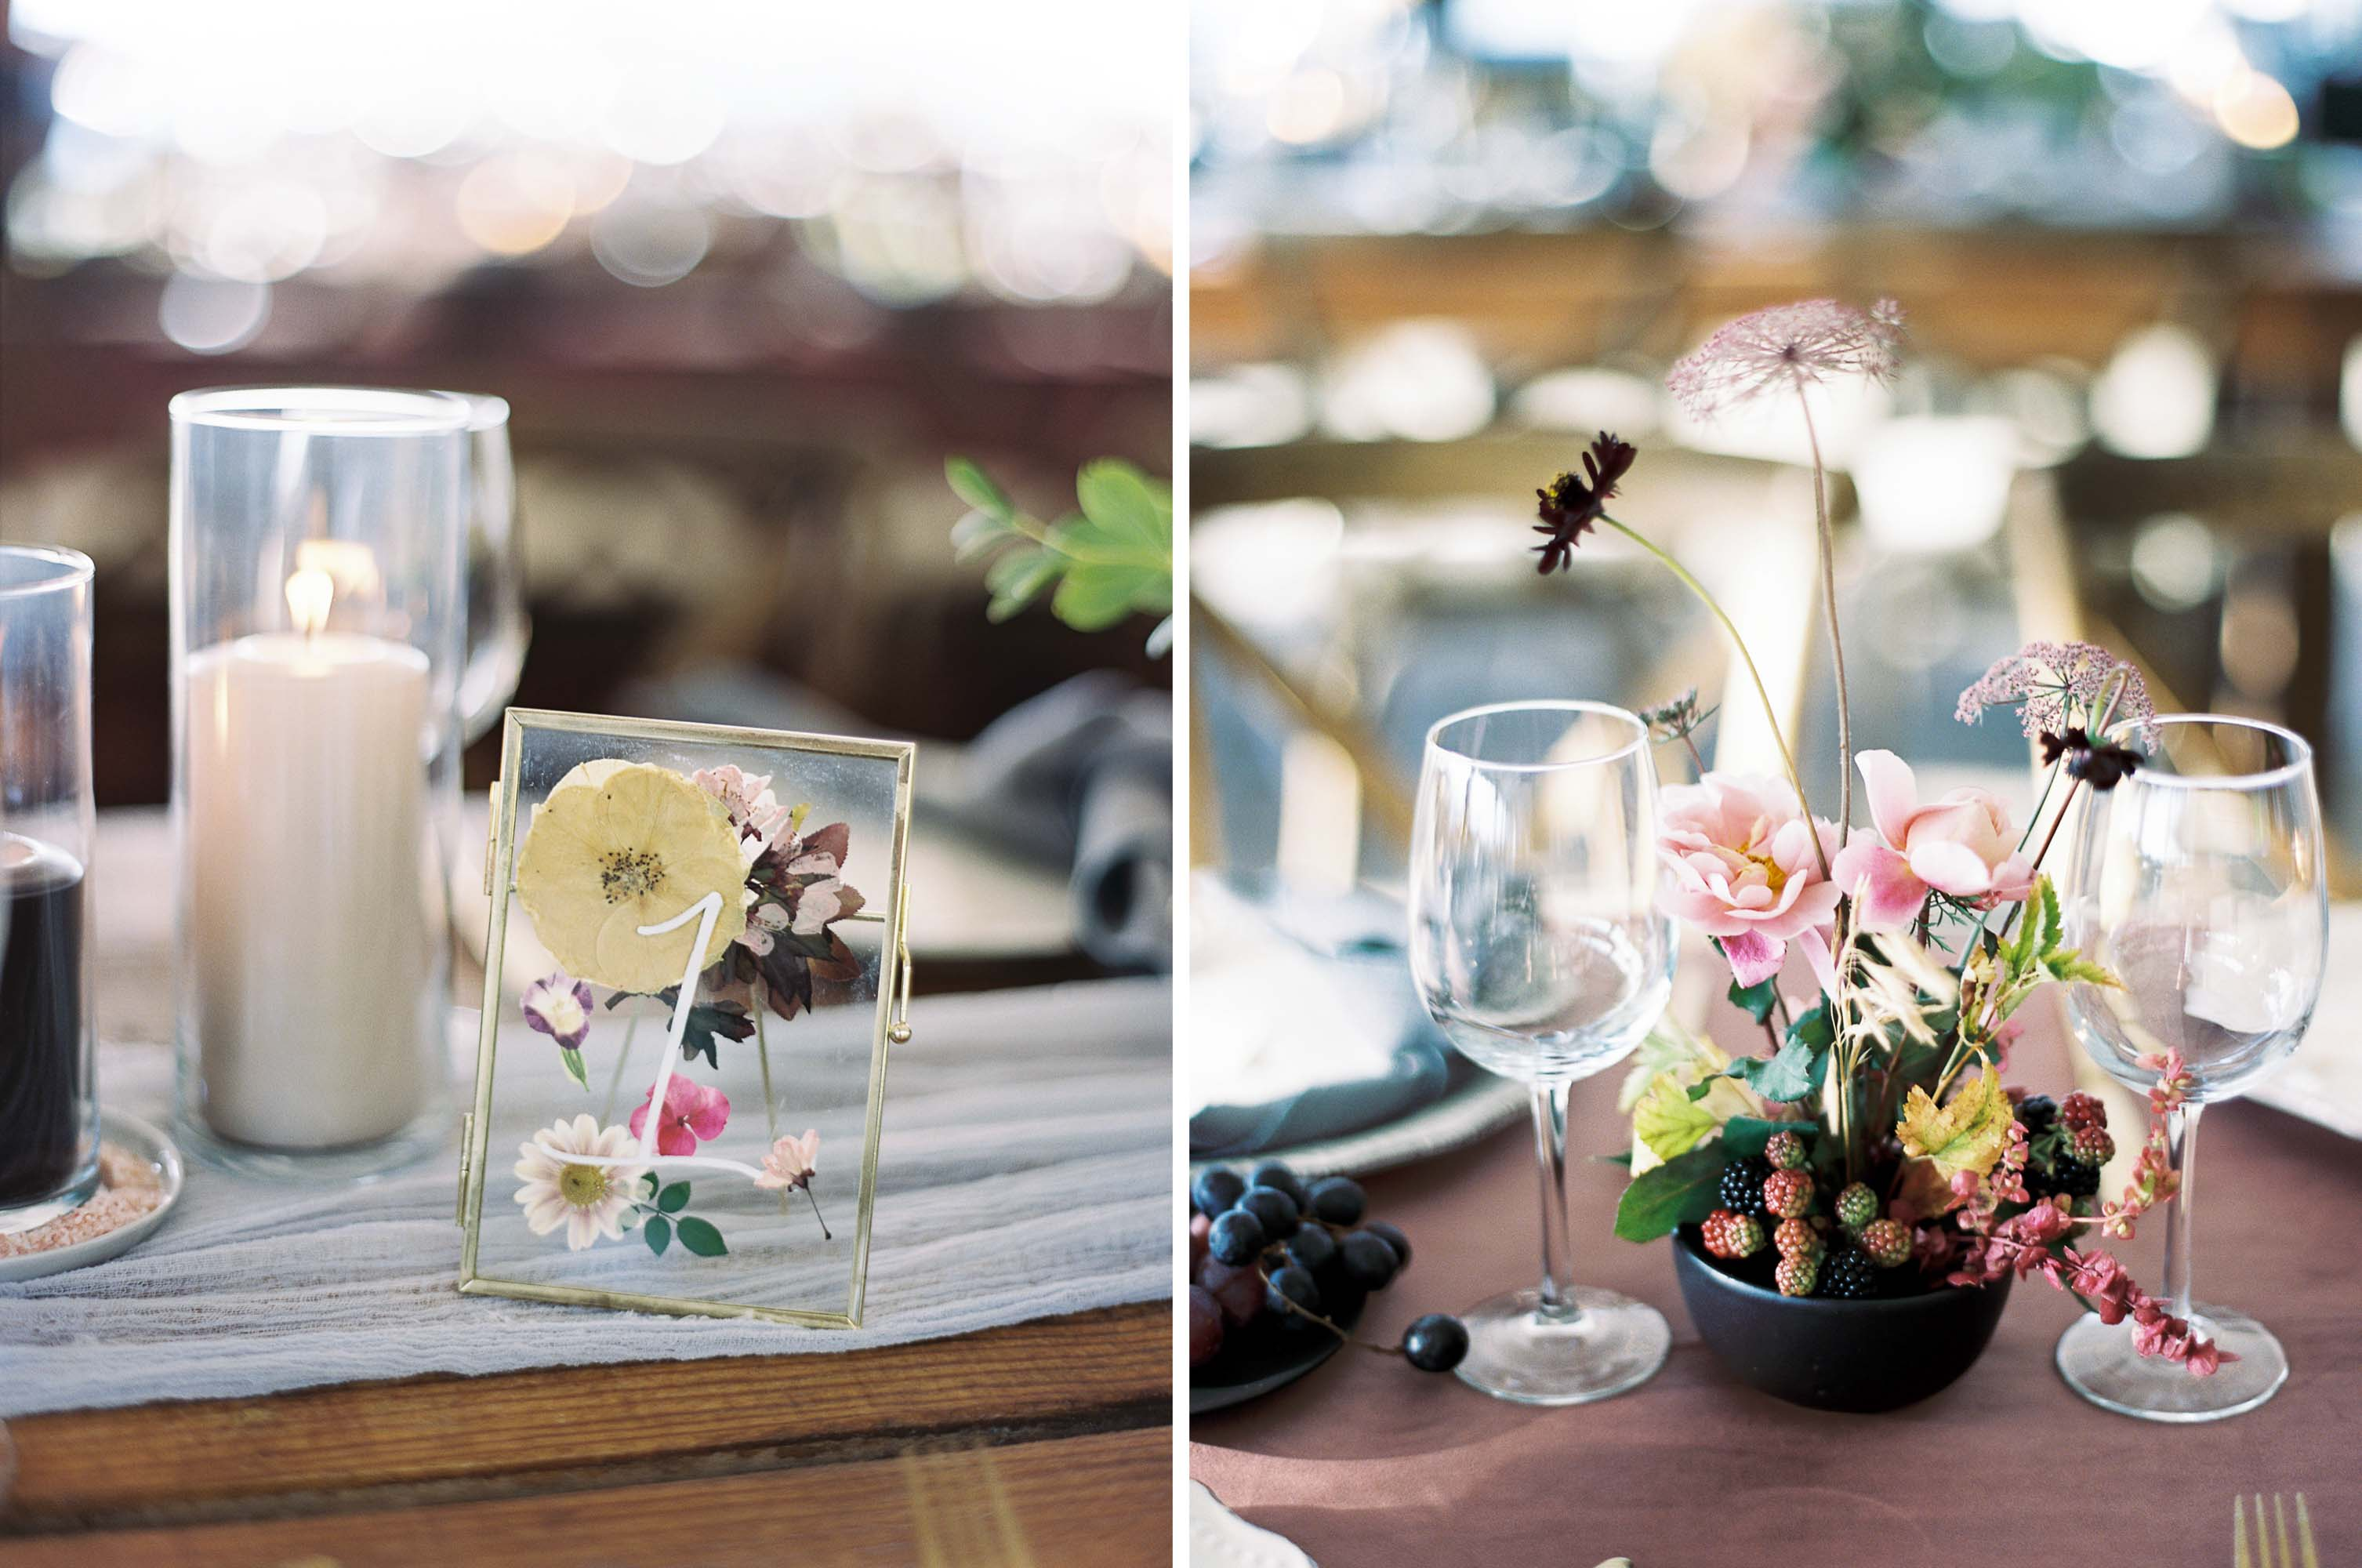 Berry toned, fall wedding with garden inspired floral design at Arbor Crest Winery in Spokane, Washington   Photographed by Seattle and Destination Wedding Photographer Anna Peters